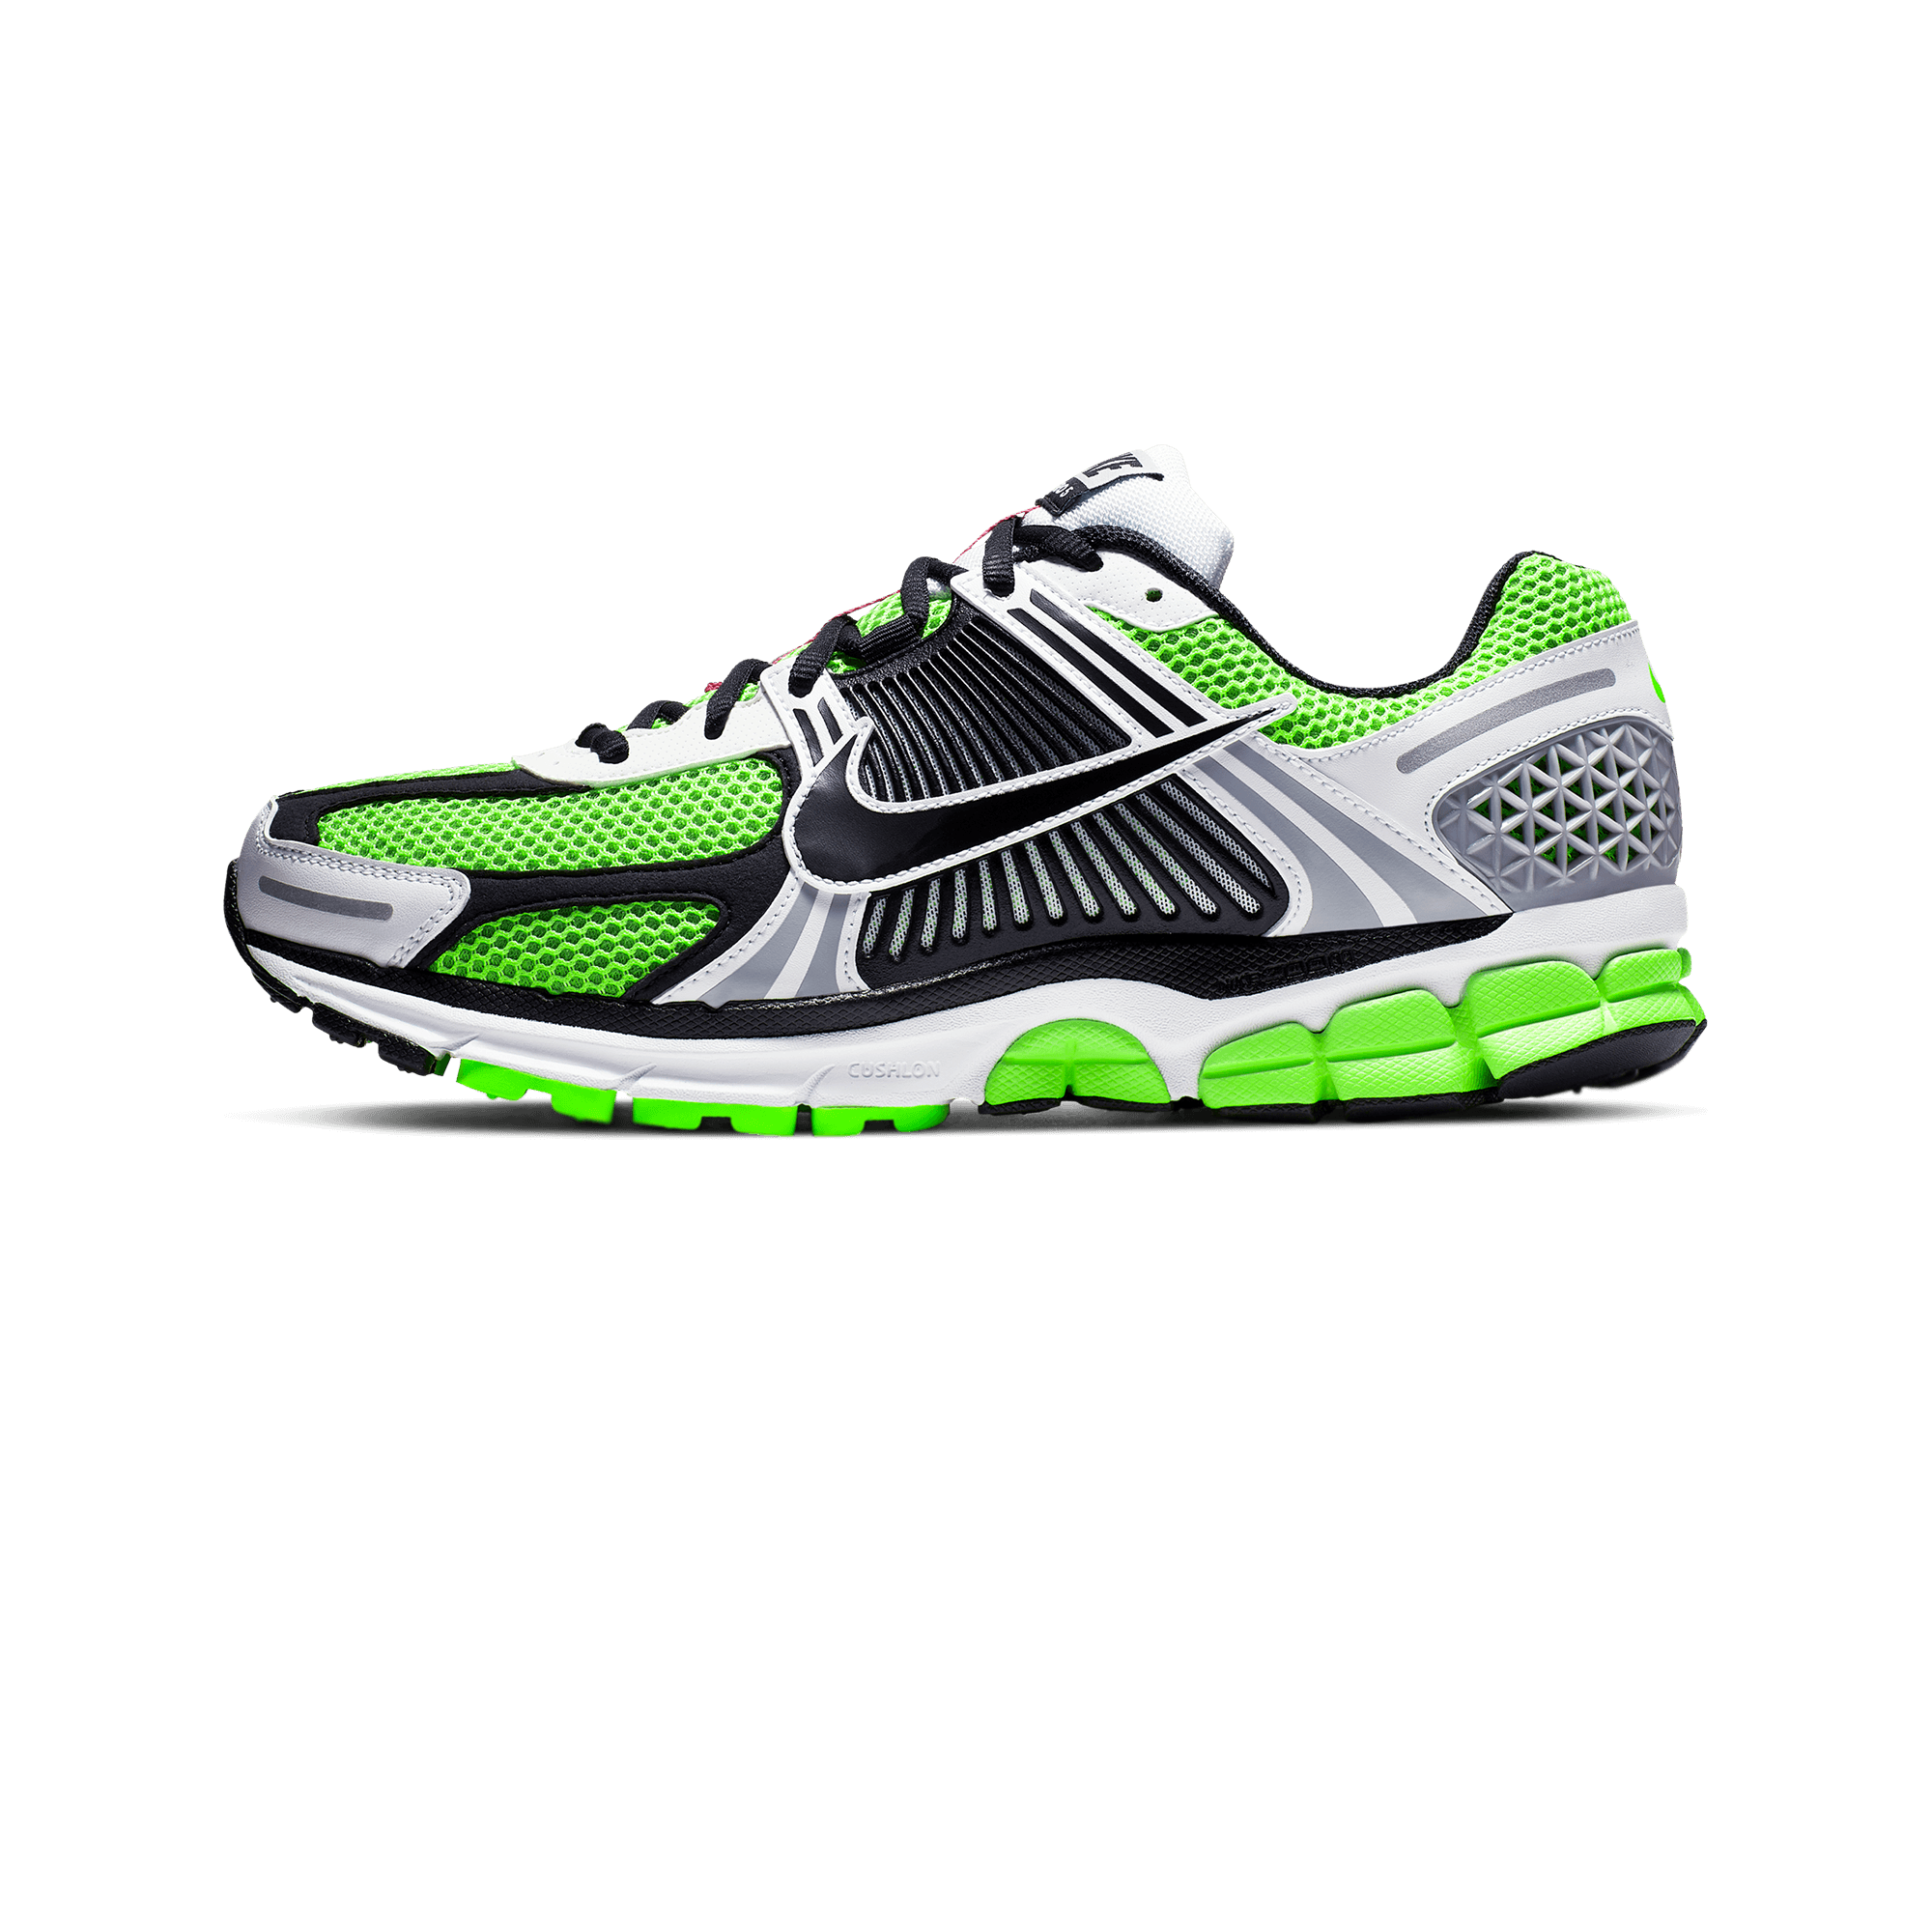 Nike Zoom Vomero 5 SE SP electric green black white Uomo |